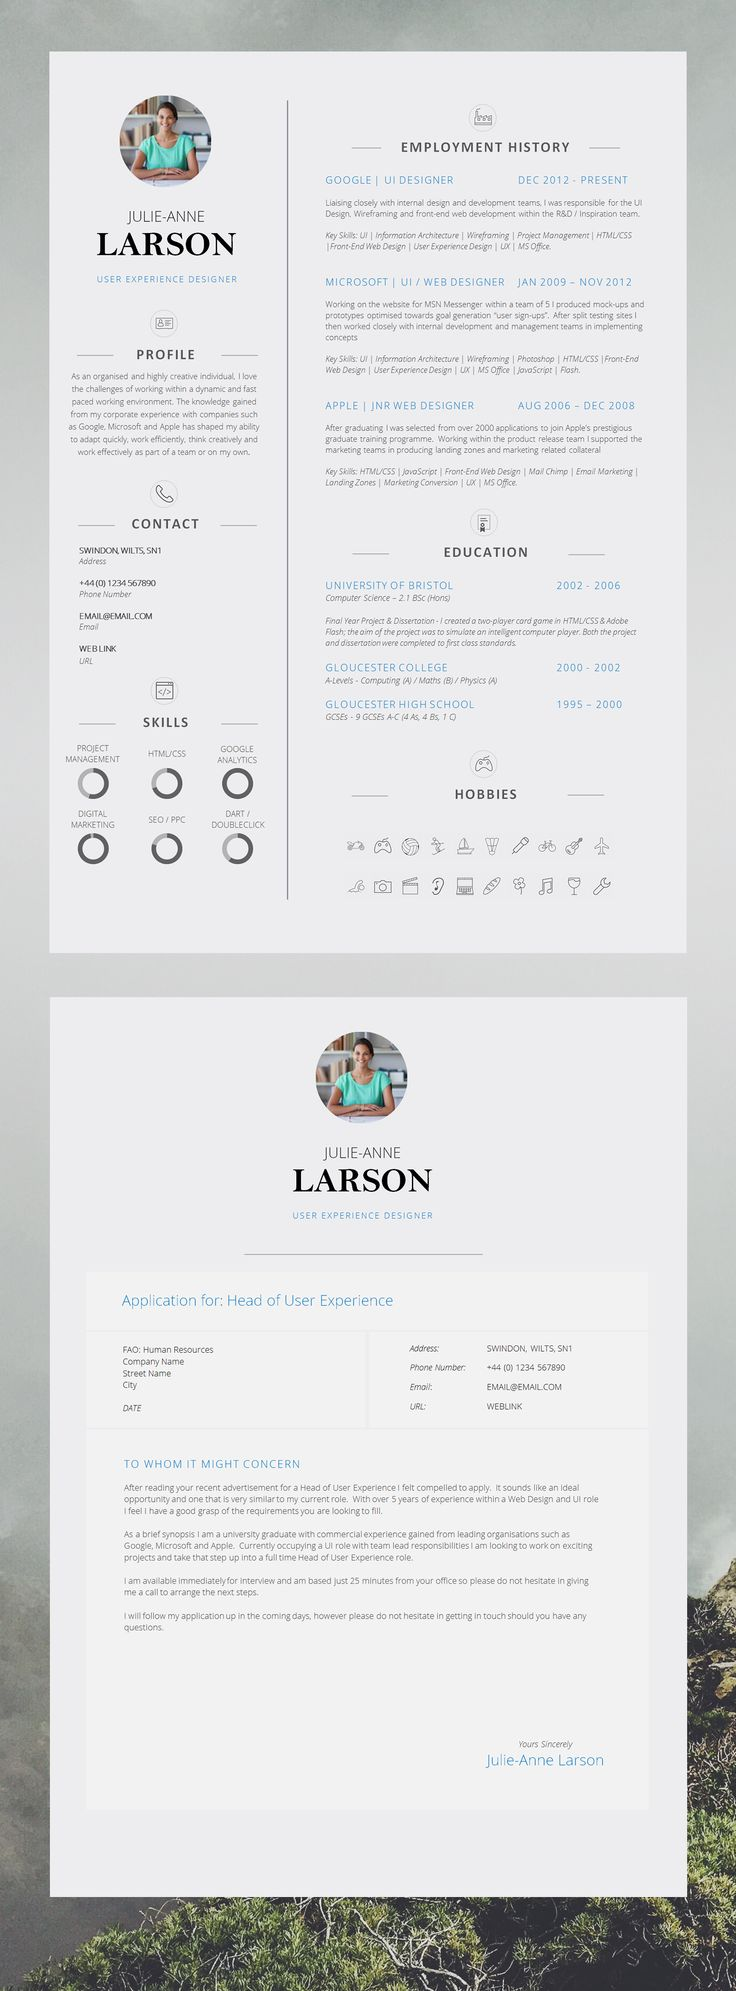 "Super Slick Single Page CV Template with Photo and Cover Letter | #Resume Template | #CV Template + Cover Letter + Application Advice | MS Word | Resume Design | #CVDesign - Instant Download | ""Belgravia"""